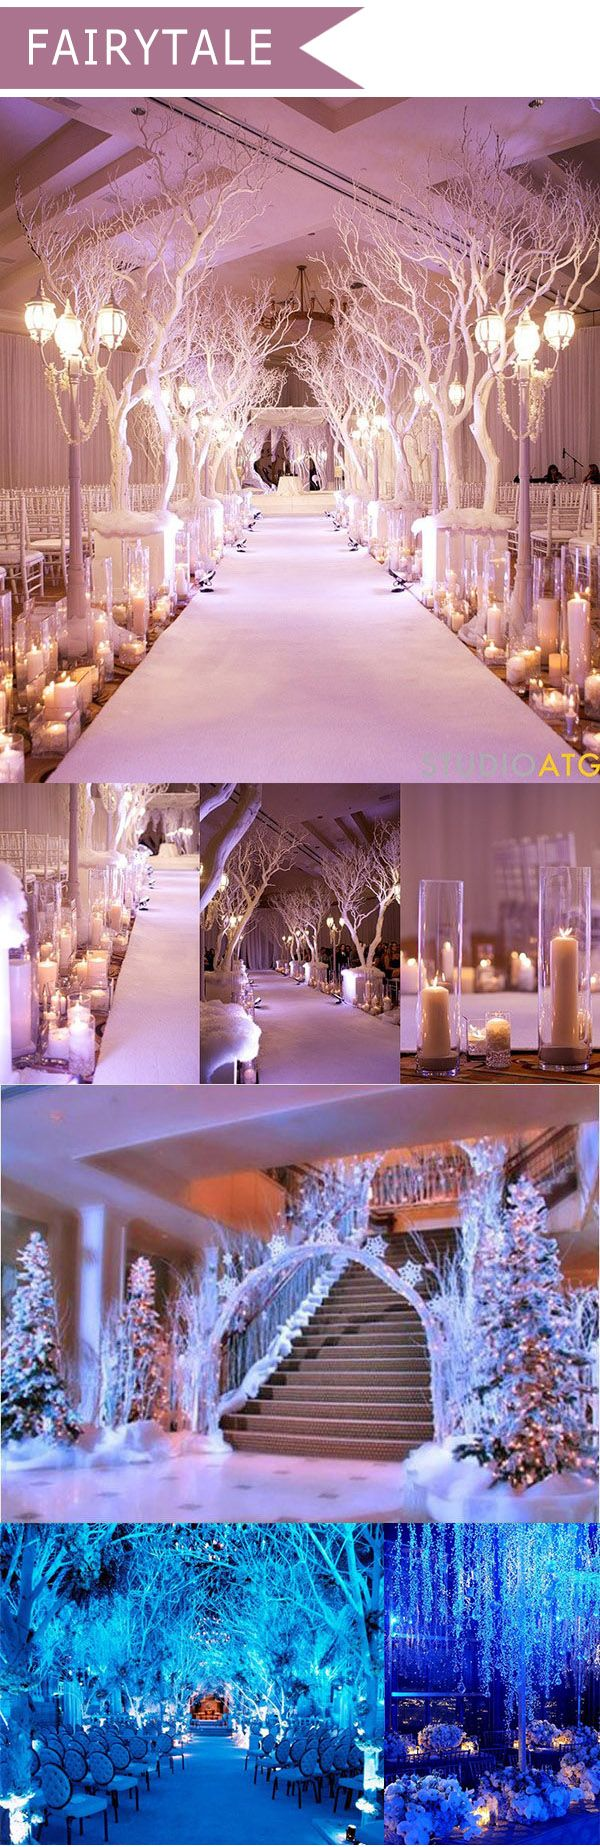 10 trending wedding theme ideas for 2016 2016 trends themed fairytale themed wedding decoration ideas for 2016 trends junglespirit Images